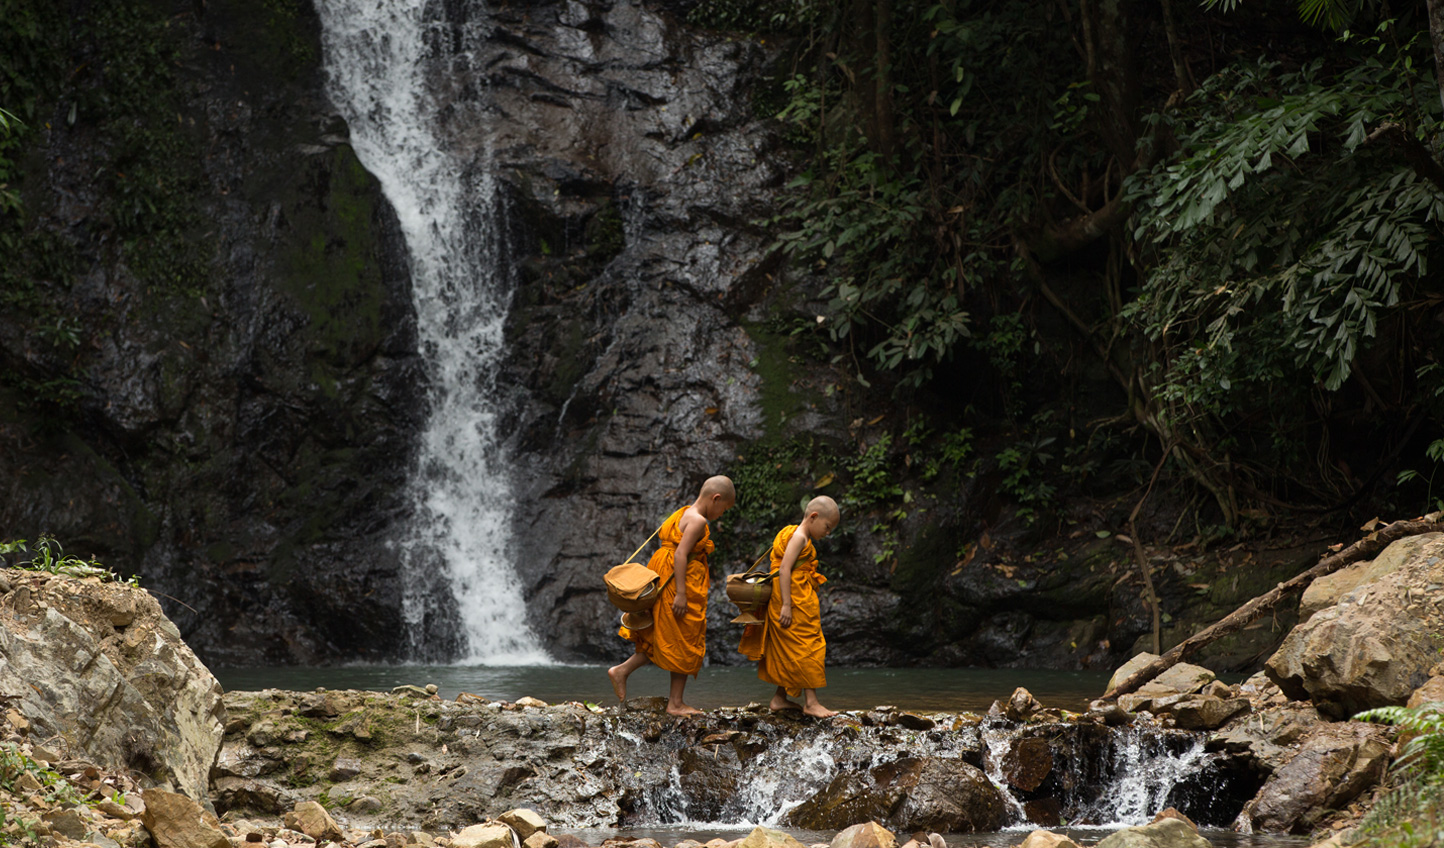 Saffron-robed Buddhist monks